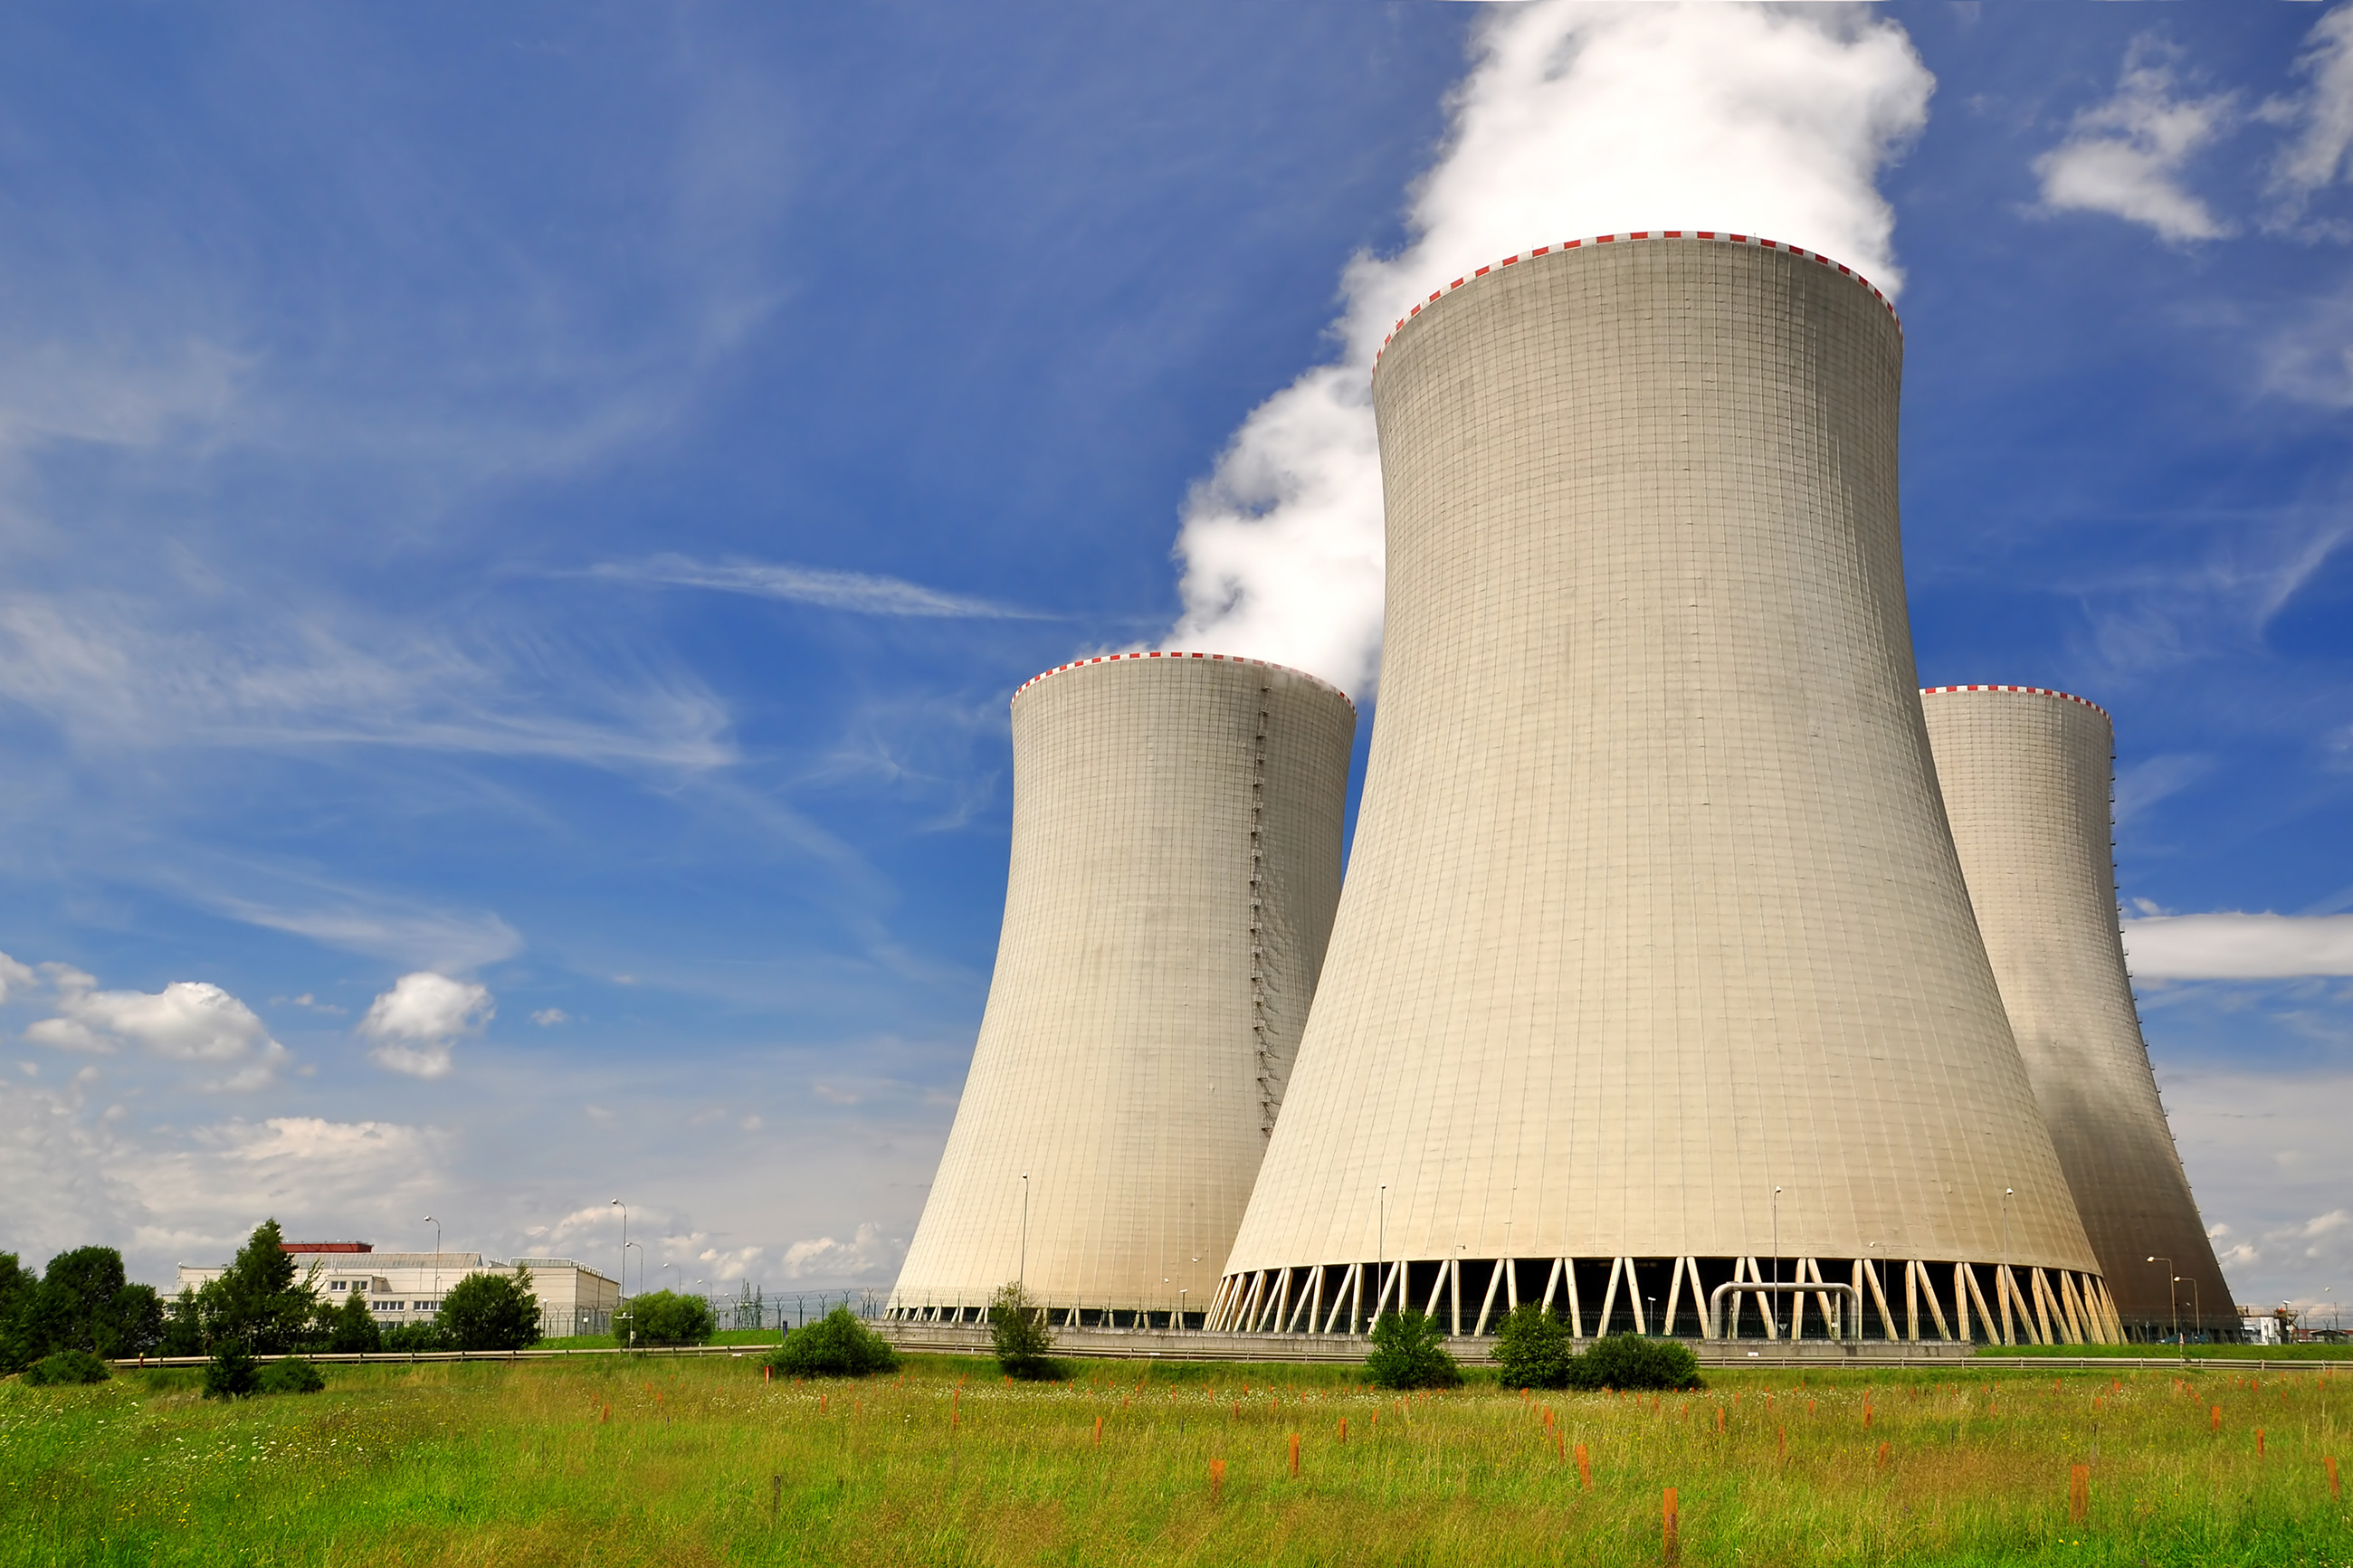 nuclear power advantages and disadvantages essay